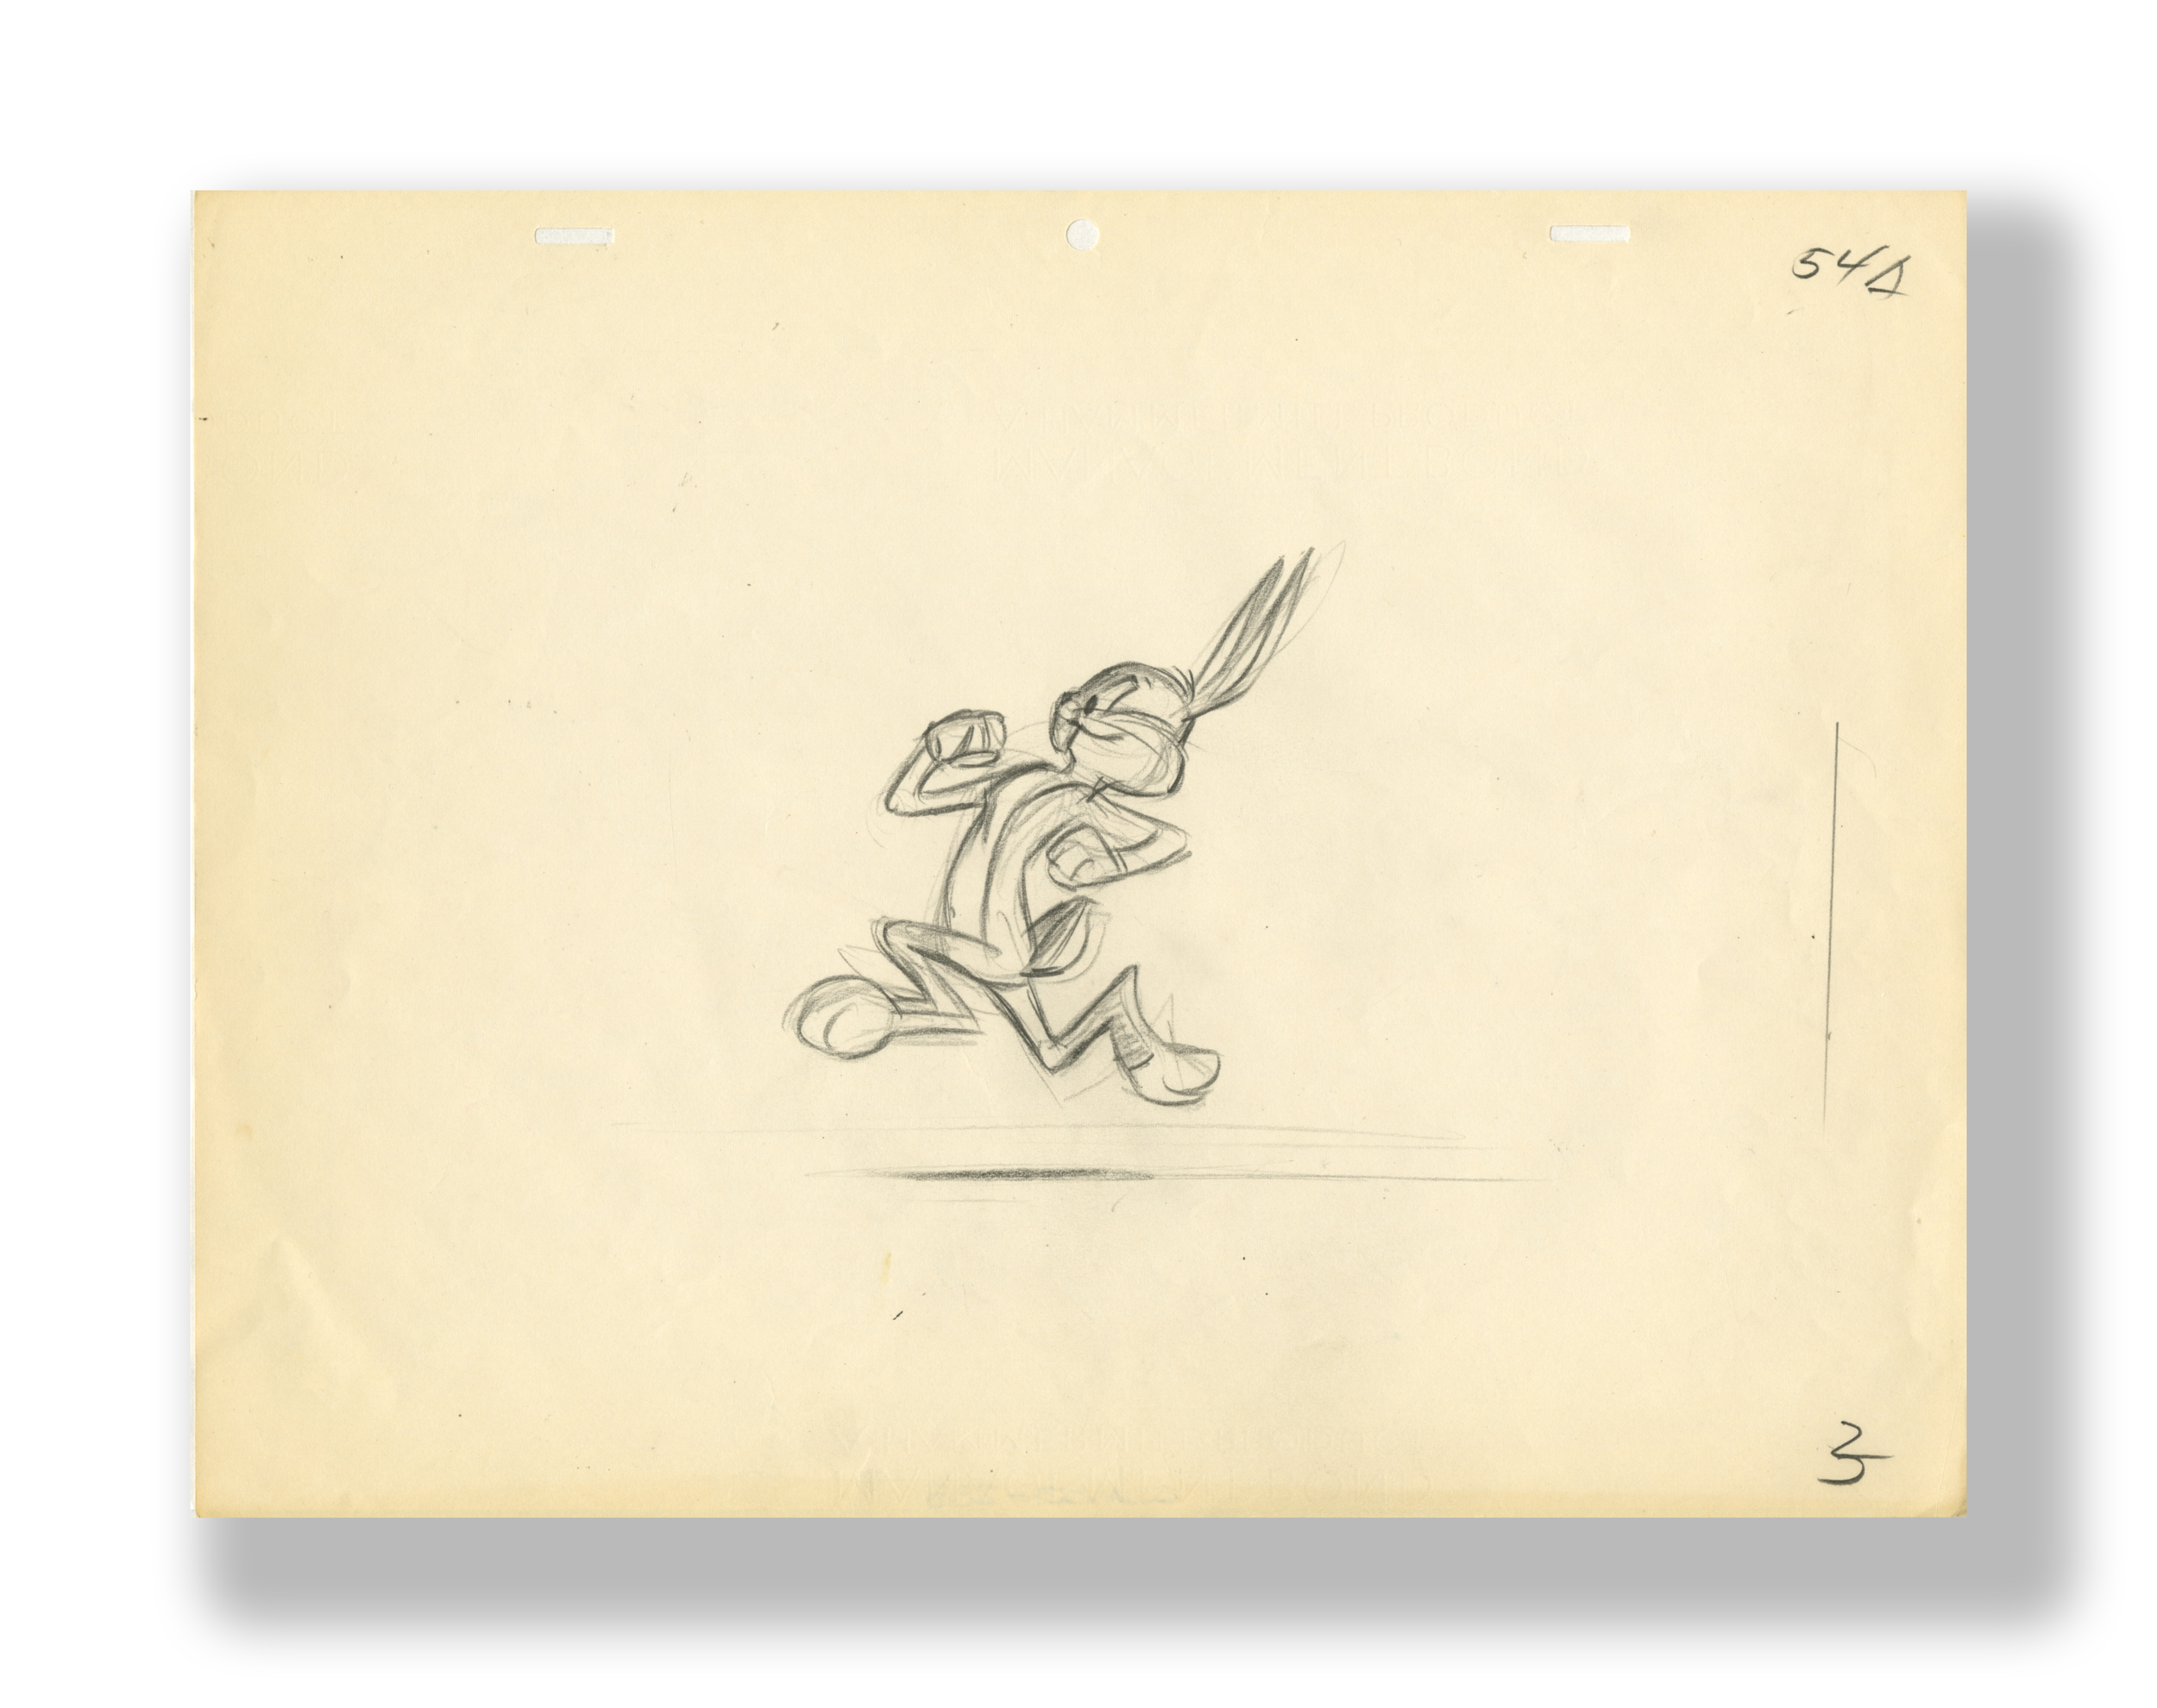 Chuck Jones   Bugs Bunny Running (Layout Drawing)   Circa Mid to Later 1950's  Graphite on 12 Field Animation Paper  10.5 x 12 5 in.  Used in the Production of an Unknown Cartoon   INQUIRE